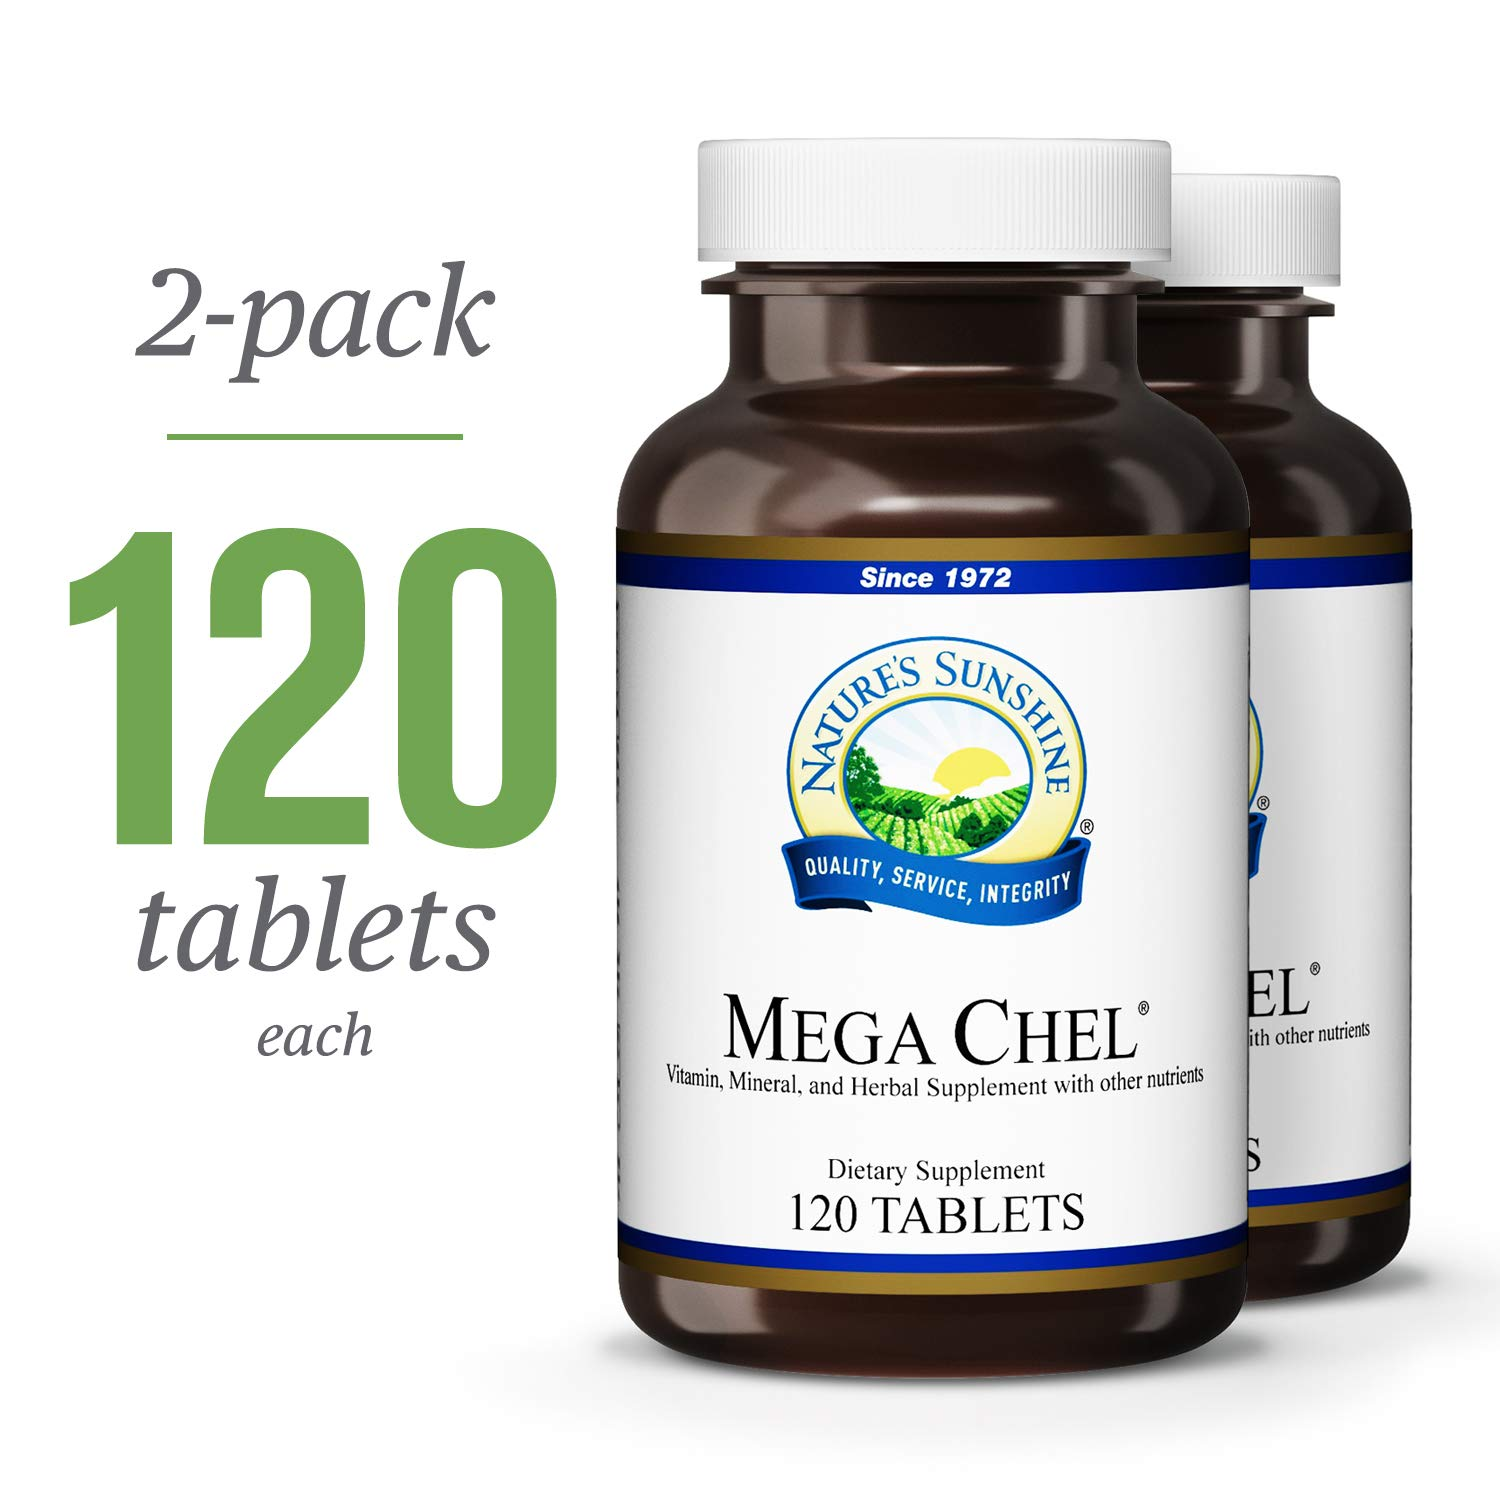 Nature s Sunshine Mega-Chel, 120 Tablets, 2 Pack Complete Vitamin with Powerful Antioxidants, Herbs, Vitamins, Minerals, and Amino Acids That Support The Circulatory System